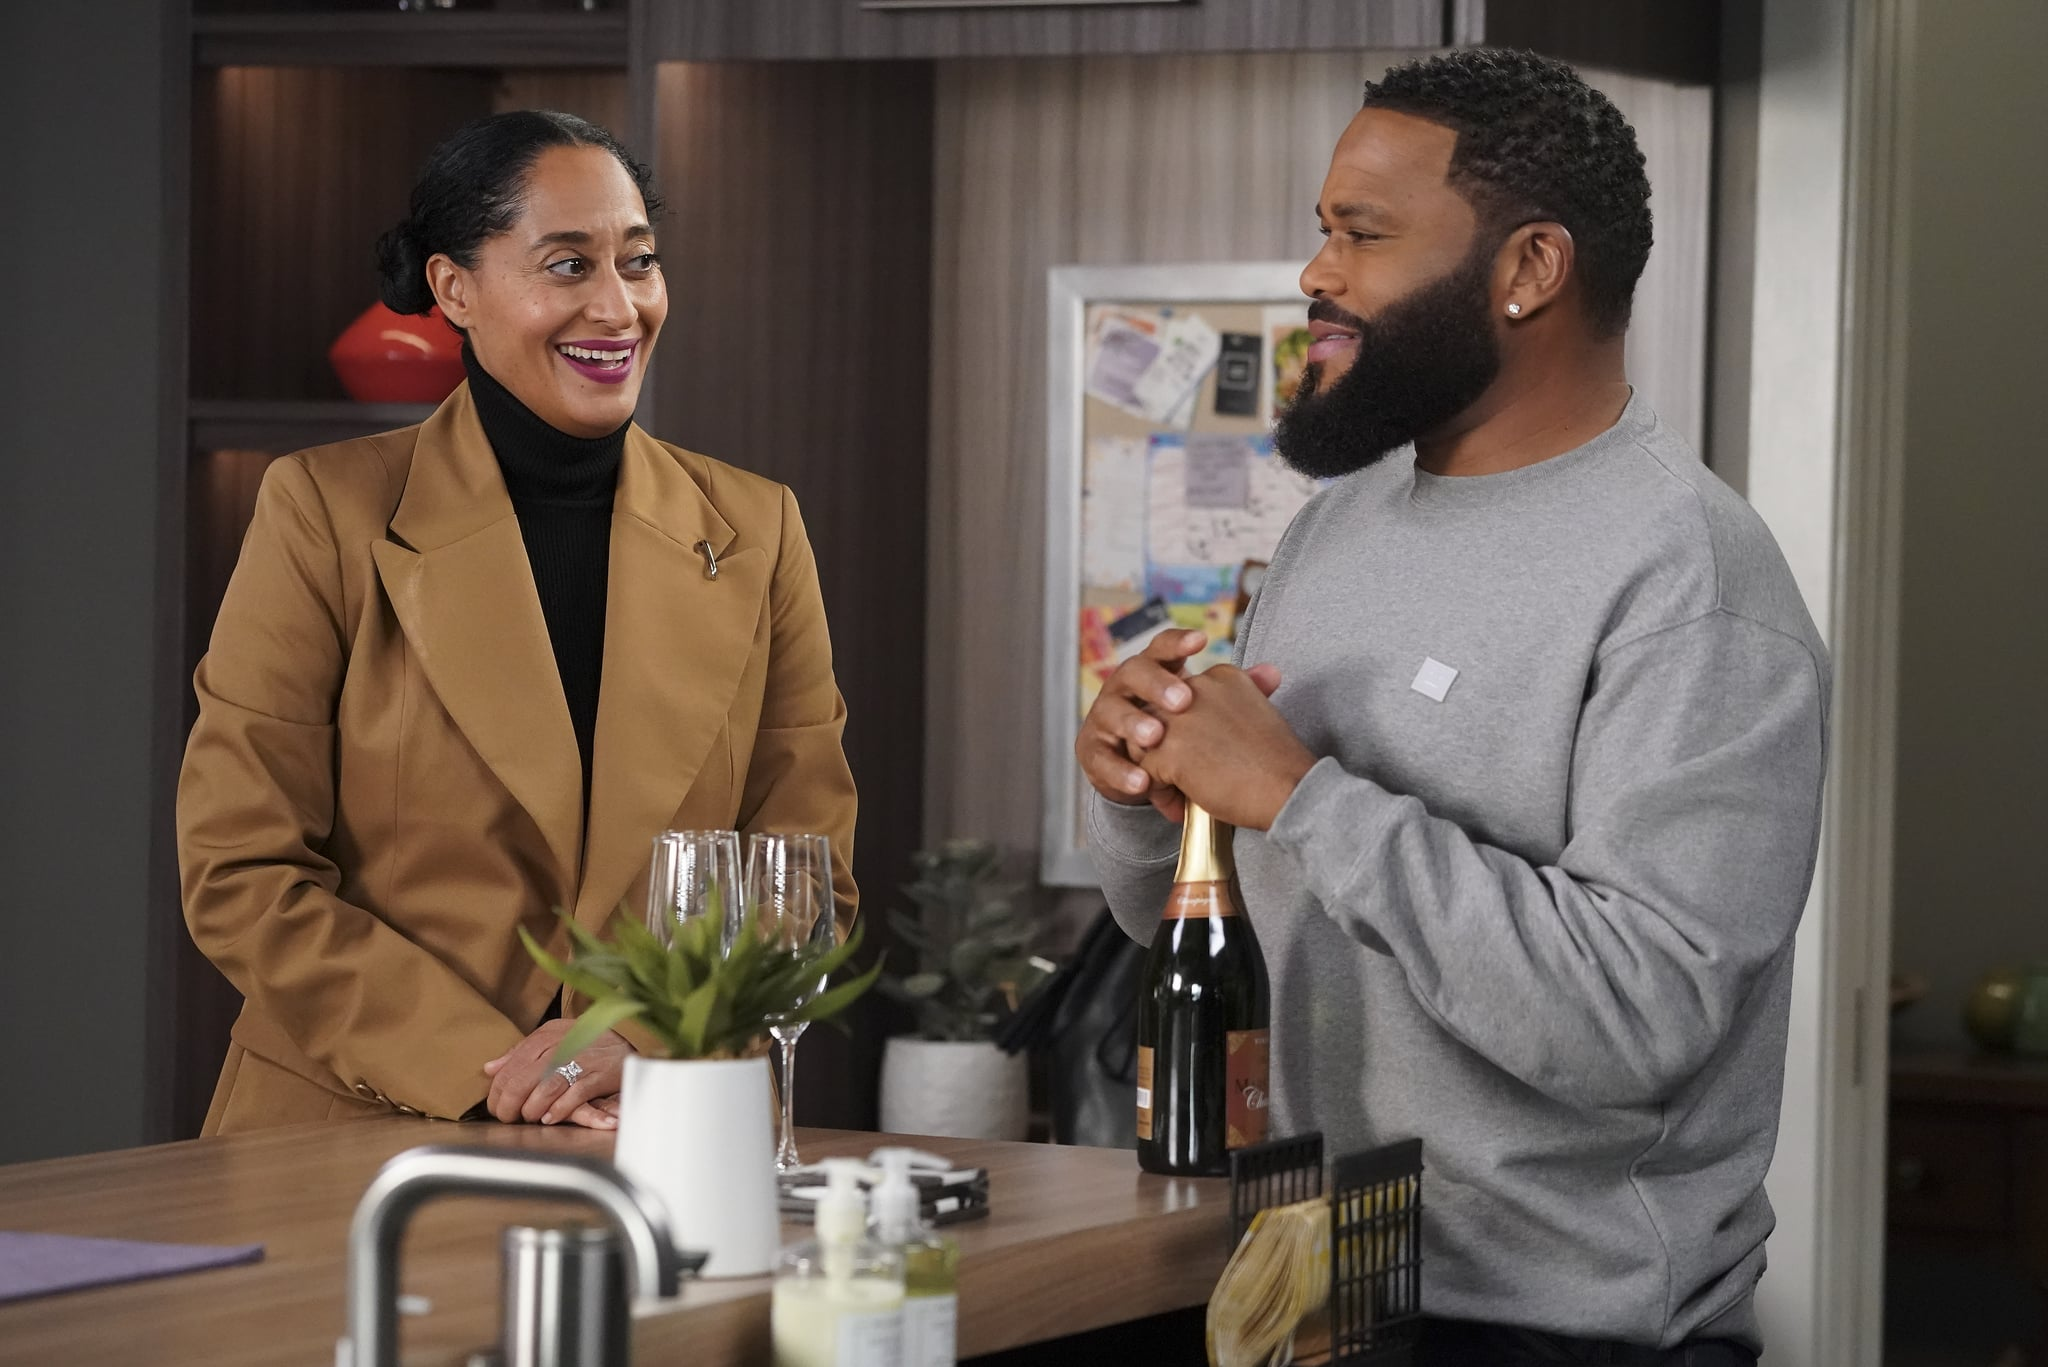 BLACK-ISH - Move-In Ready  Against the warnings of Dre and his coworkers, Junior is resolute about his decision to move in with Olivia. They go on an apartment hunt together, but tensions rise when Olivia compares Junior to Dre. Meanwhile, Bow challenges Dre to get comfortable being alone on an all-new episode of black-ish, TUESDAY, APRIL 6 (9:00-9:30 p.m. EDT), on ABC. (ABC/Richard Cartwright)TRACEE ELLIS ROSS, ANTHONY ANDERSON